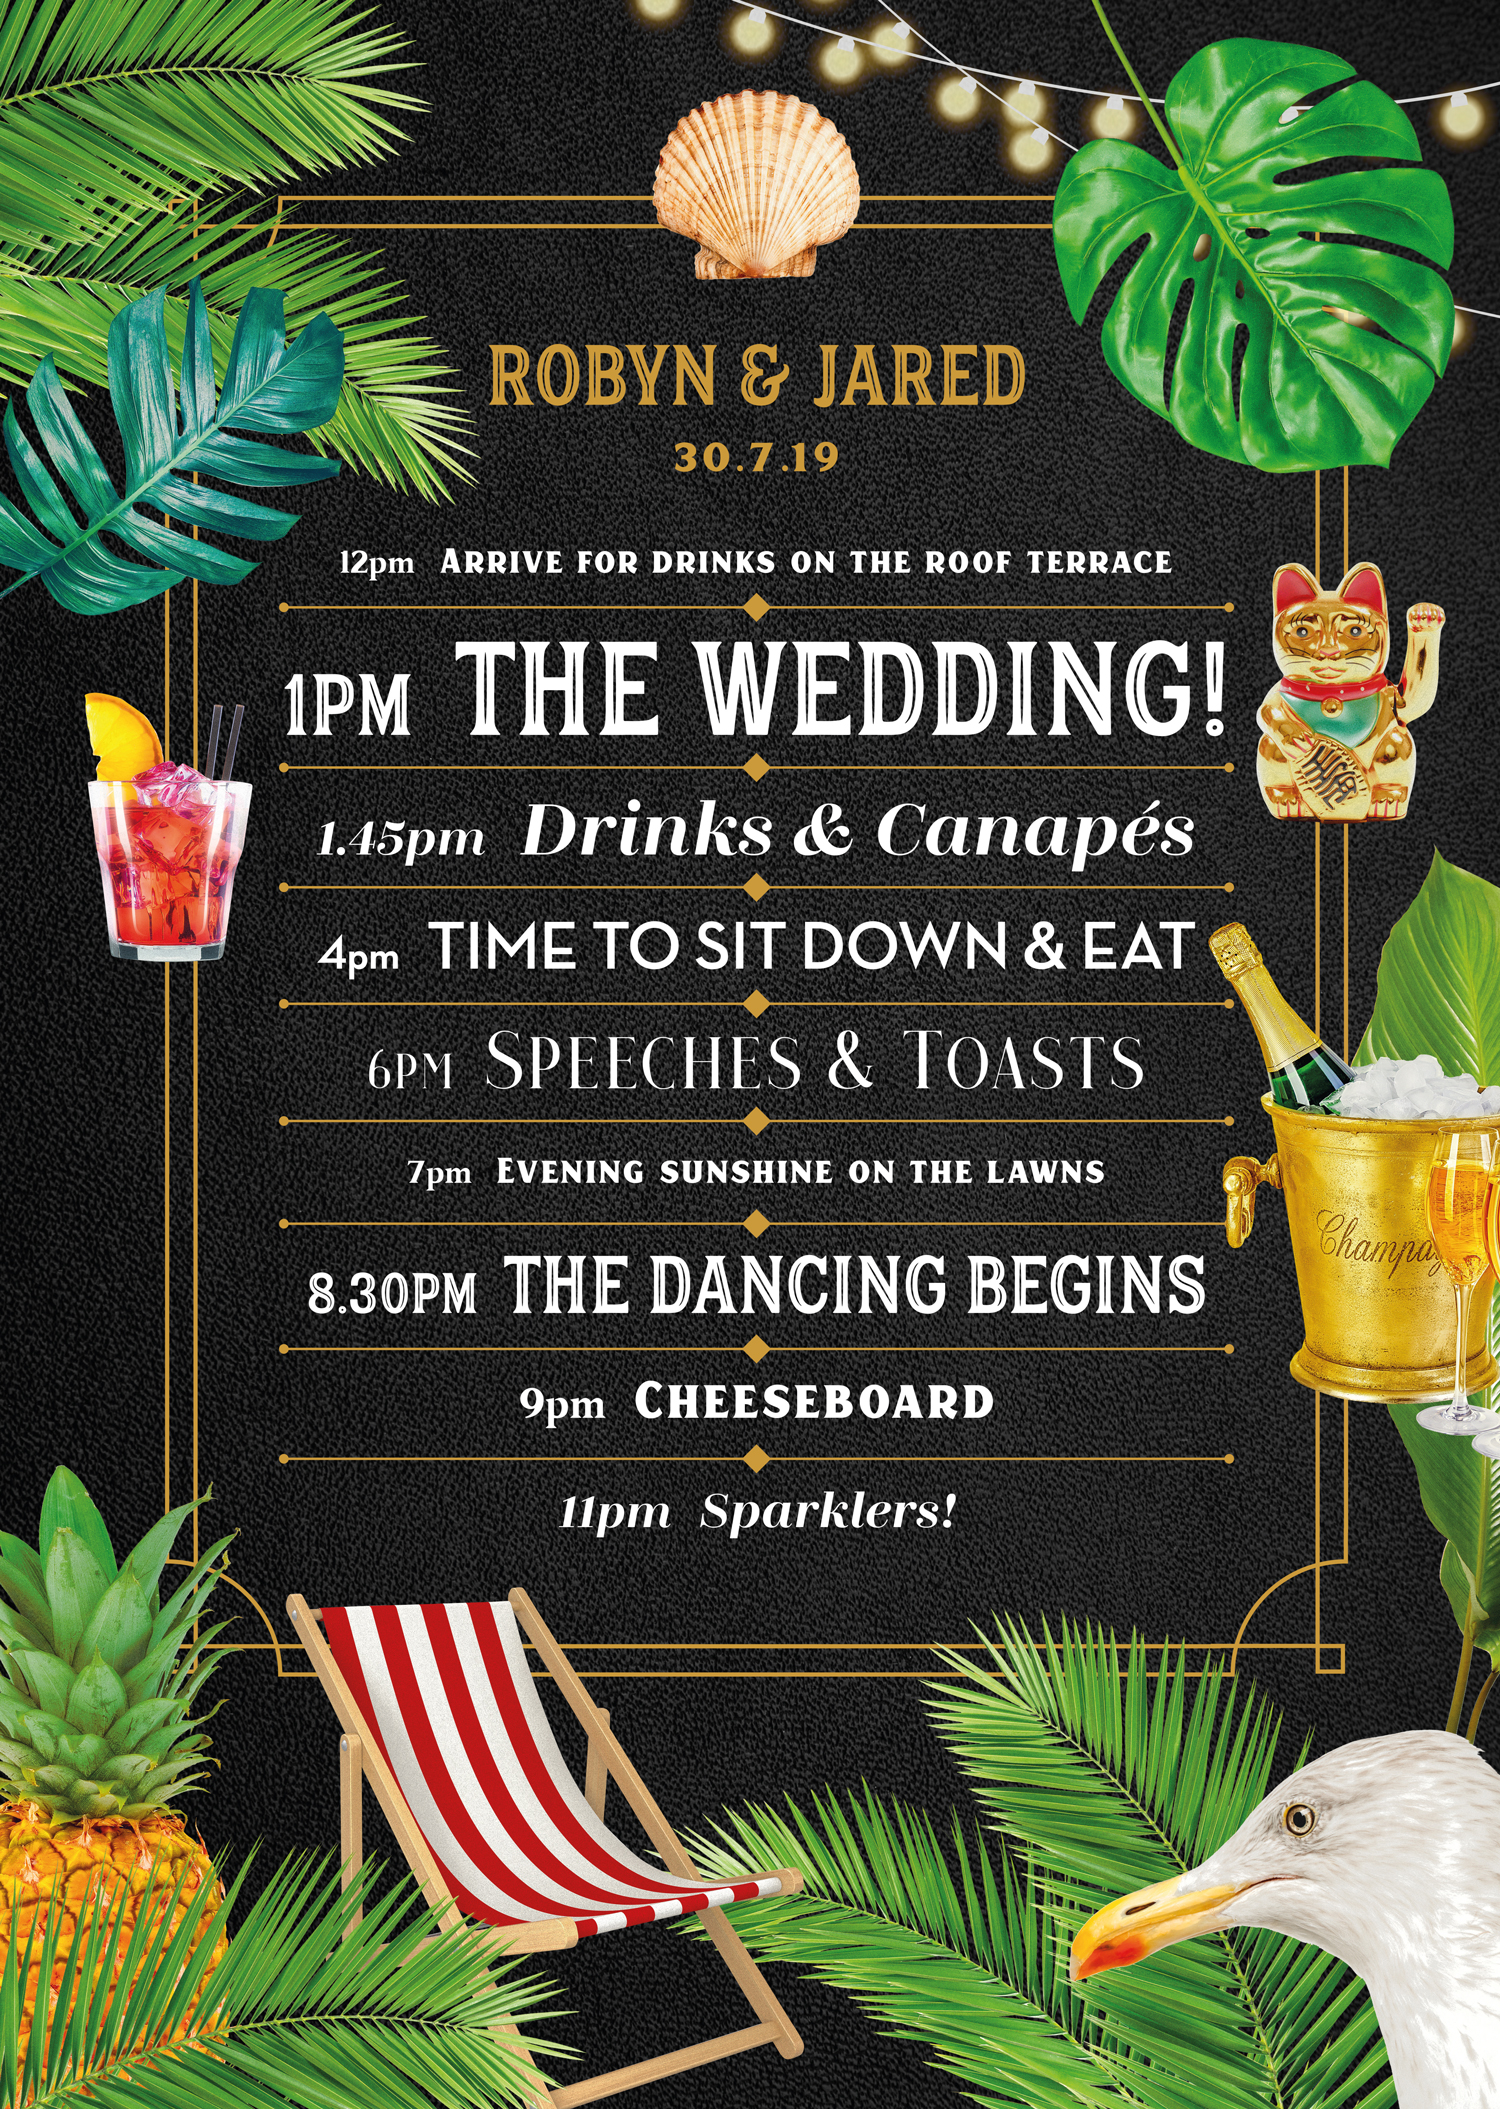 Wedding poster design